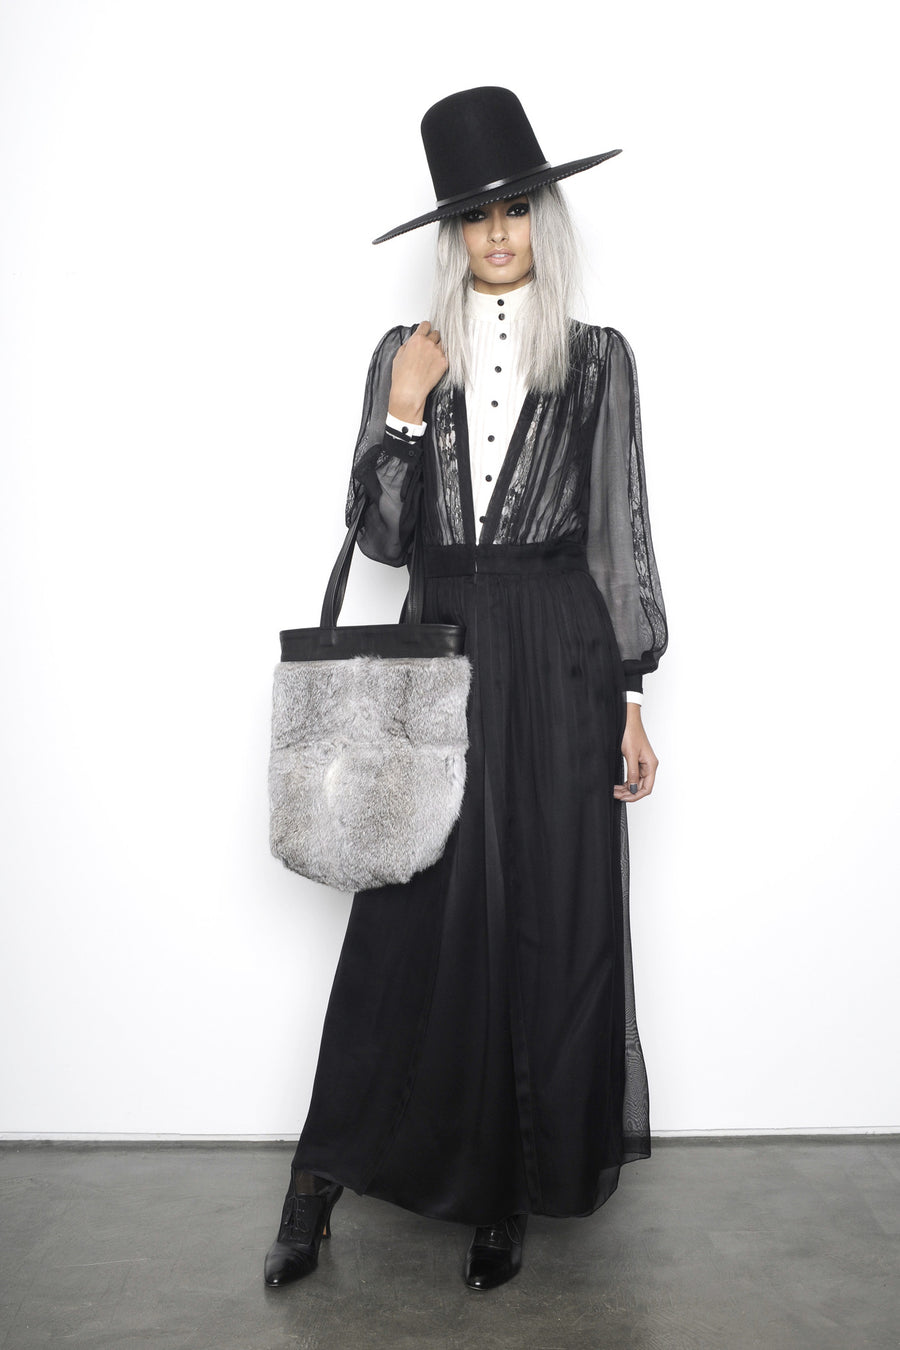 Gizele Oliveira IMG Model Gray Grey One of a Kind Rabbit Fur Tote Black Leather Wendy Nichol Luxury Handbag Purse Bag Designer handmade in NYC New York City one of a kind Durable Handle strap Interior Pocket High Quality Leather AW15 Queen of Thieves